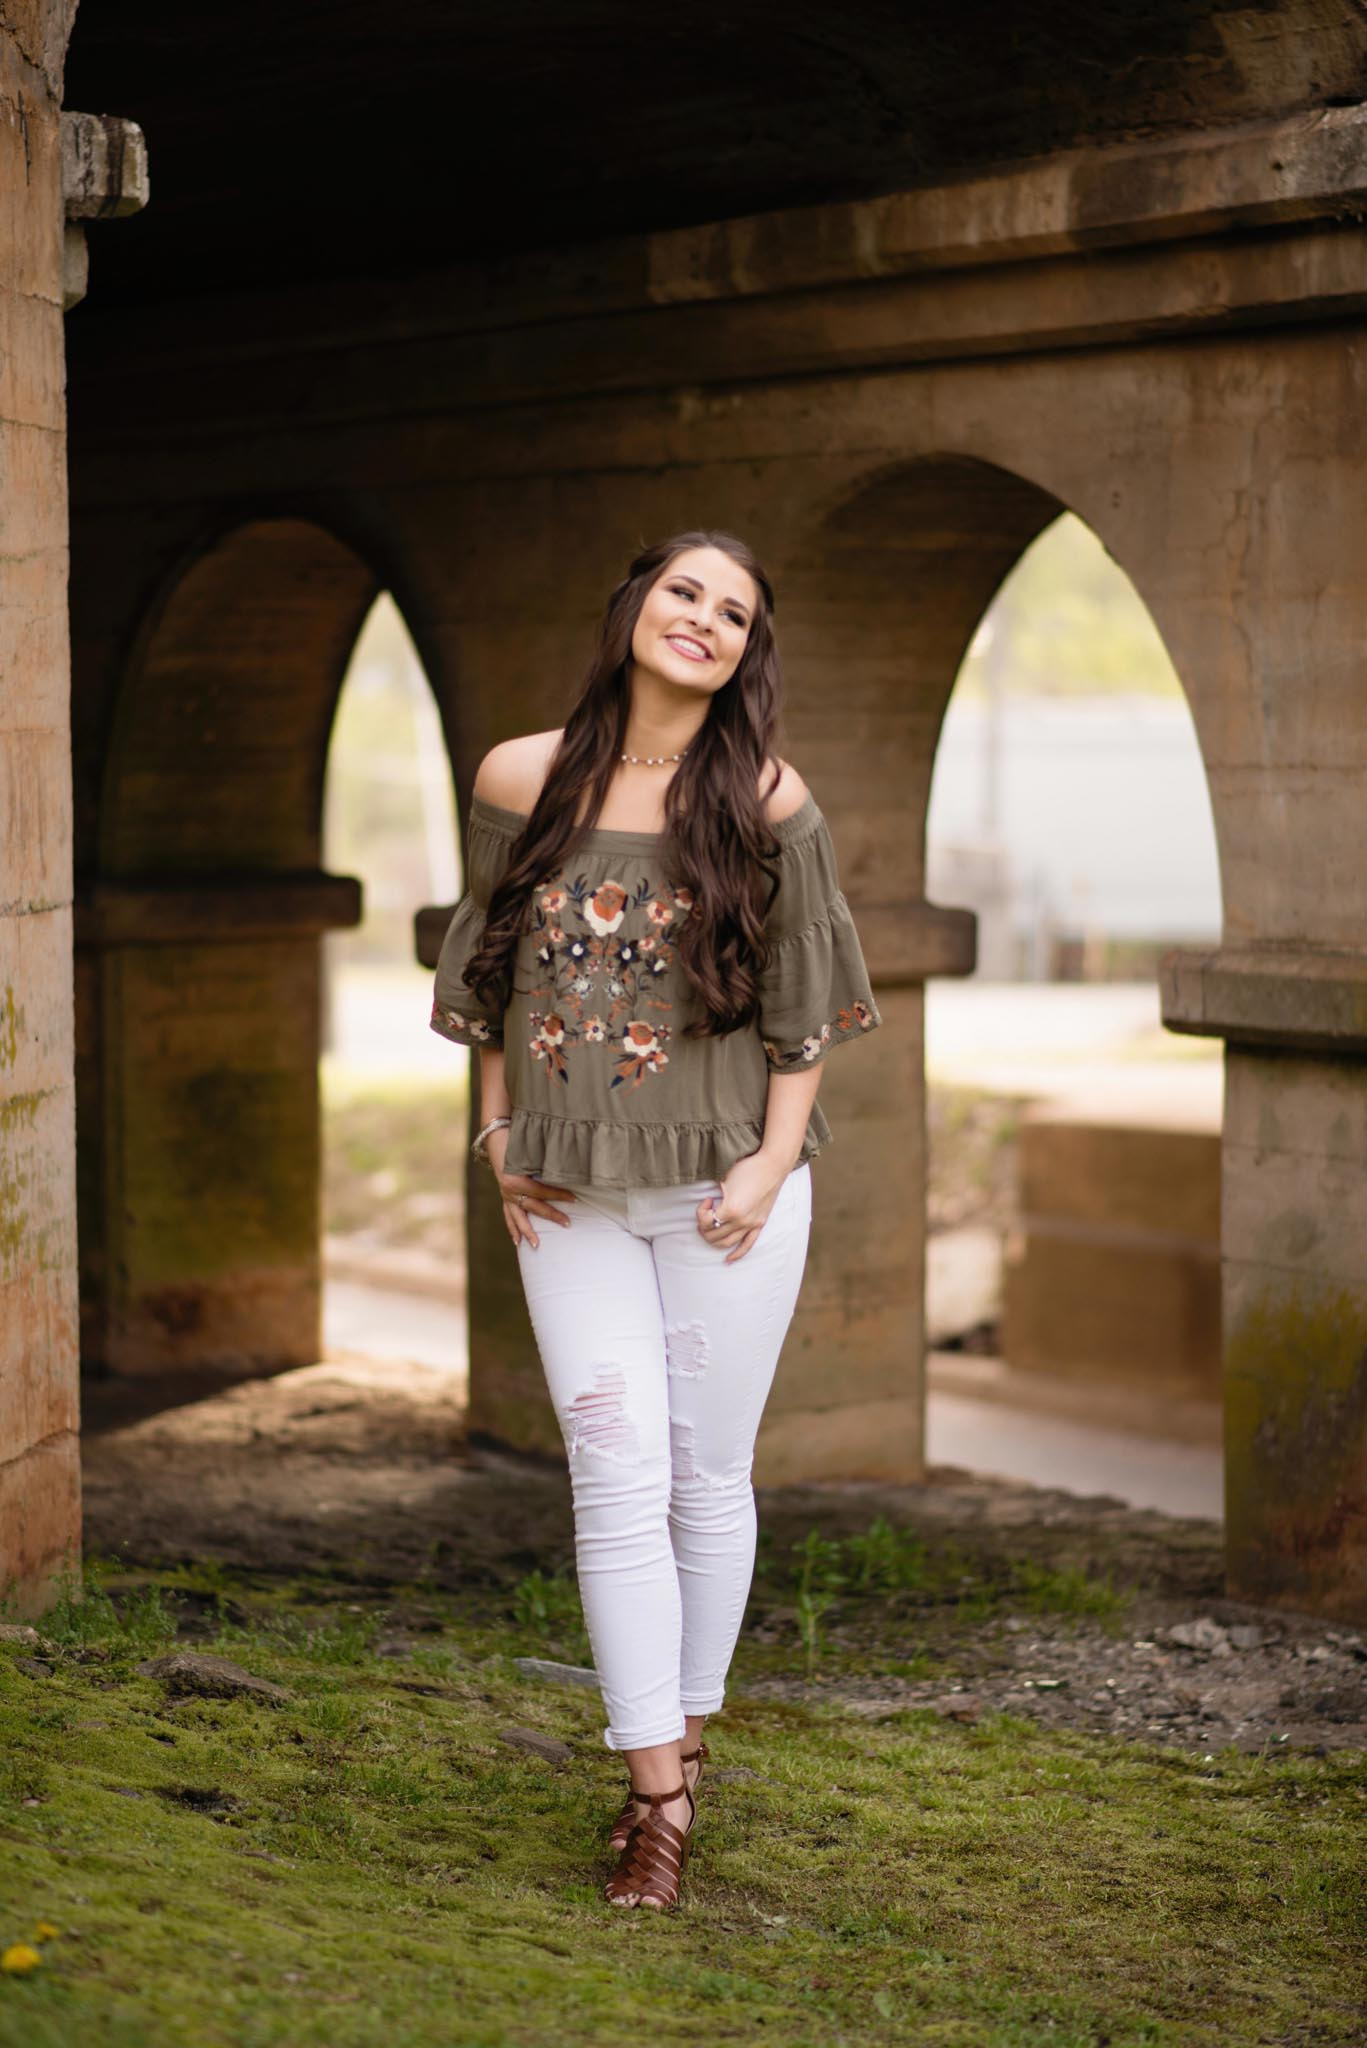 halifax-co-senior-photo